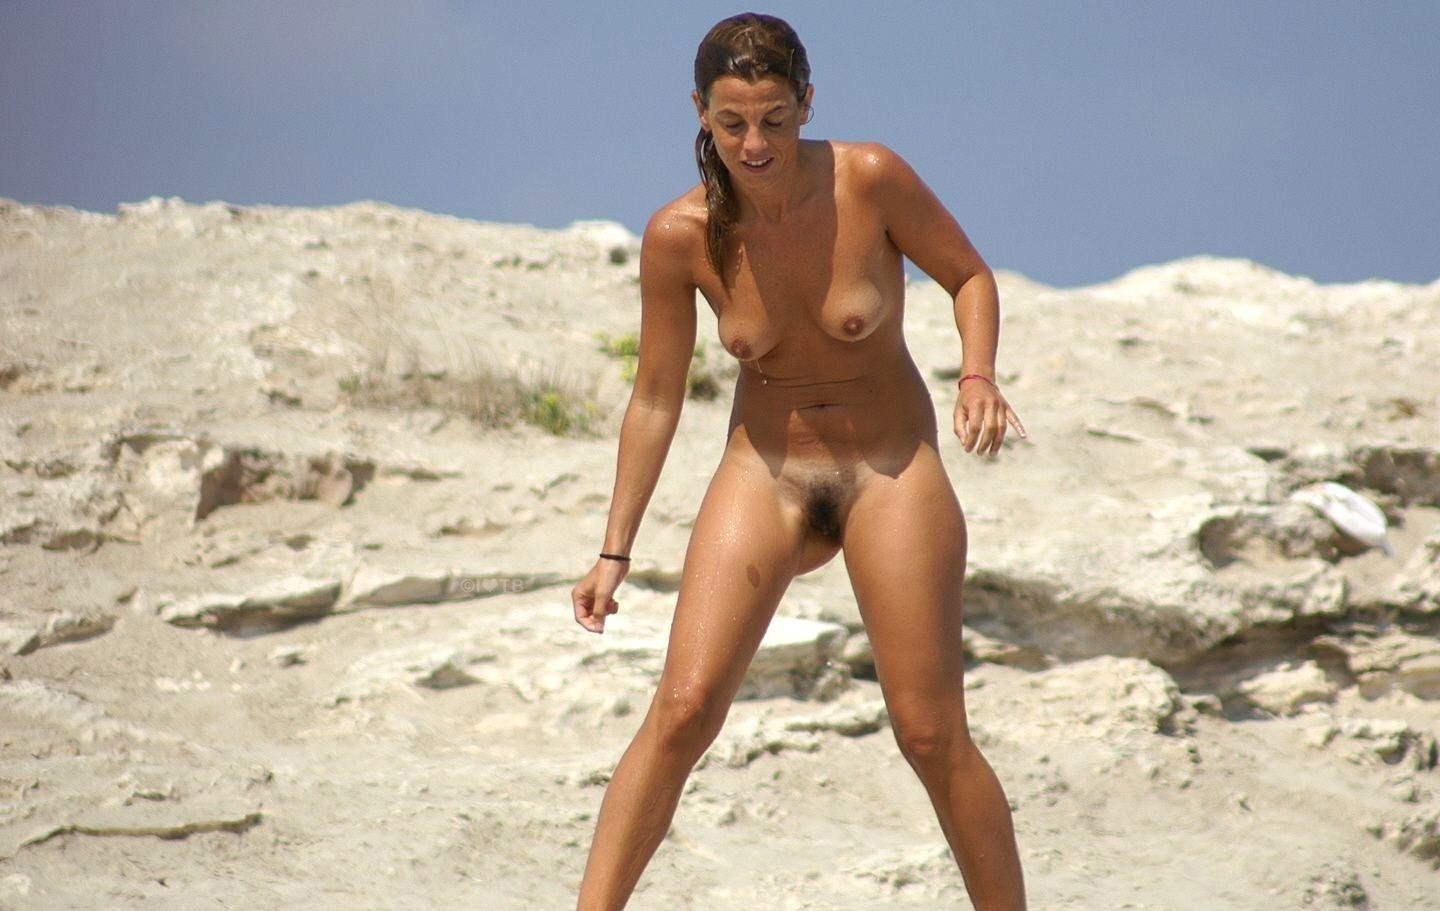 Porn in the beach and the bush #2